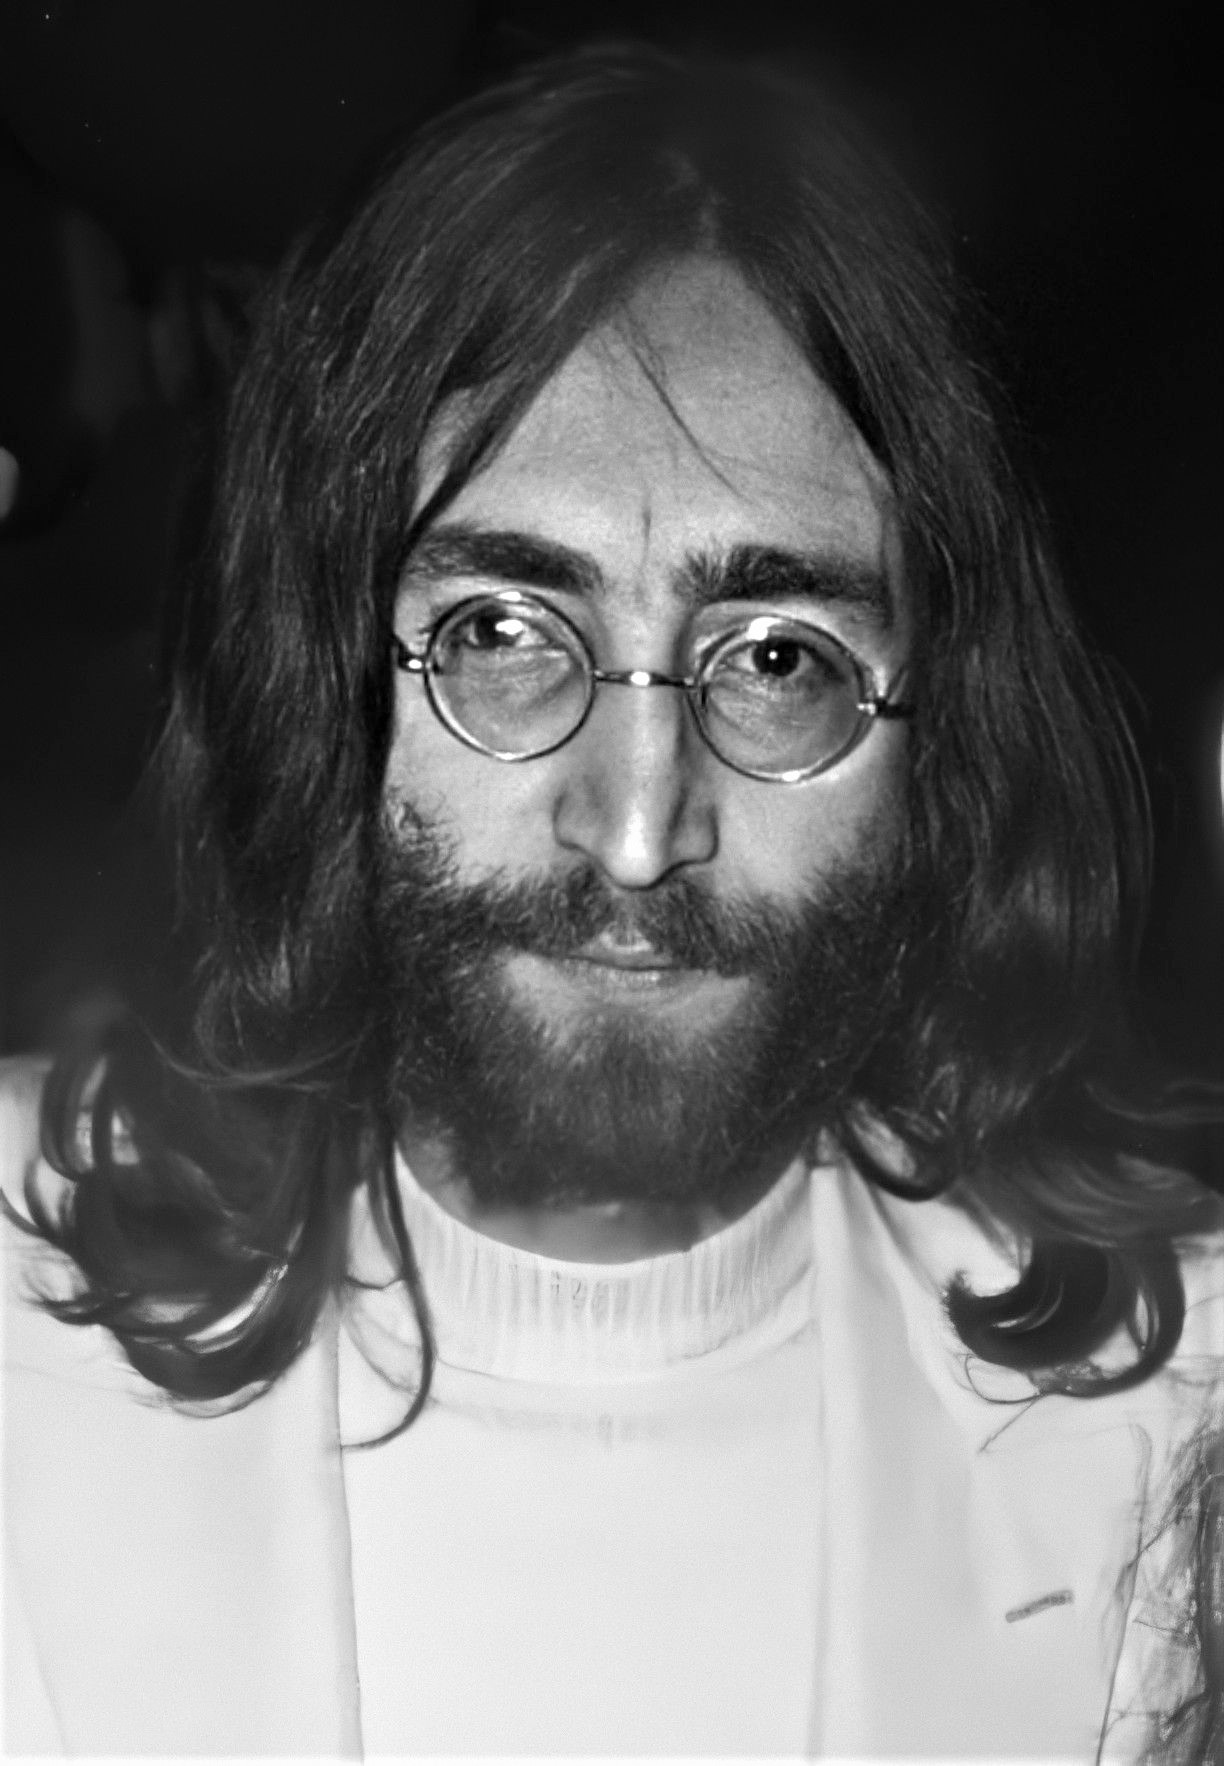 John_Lennon_1969_(cropped) Joost Evers Anefo CC0